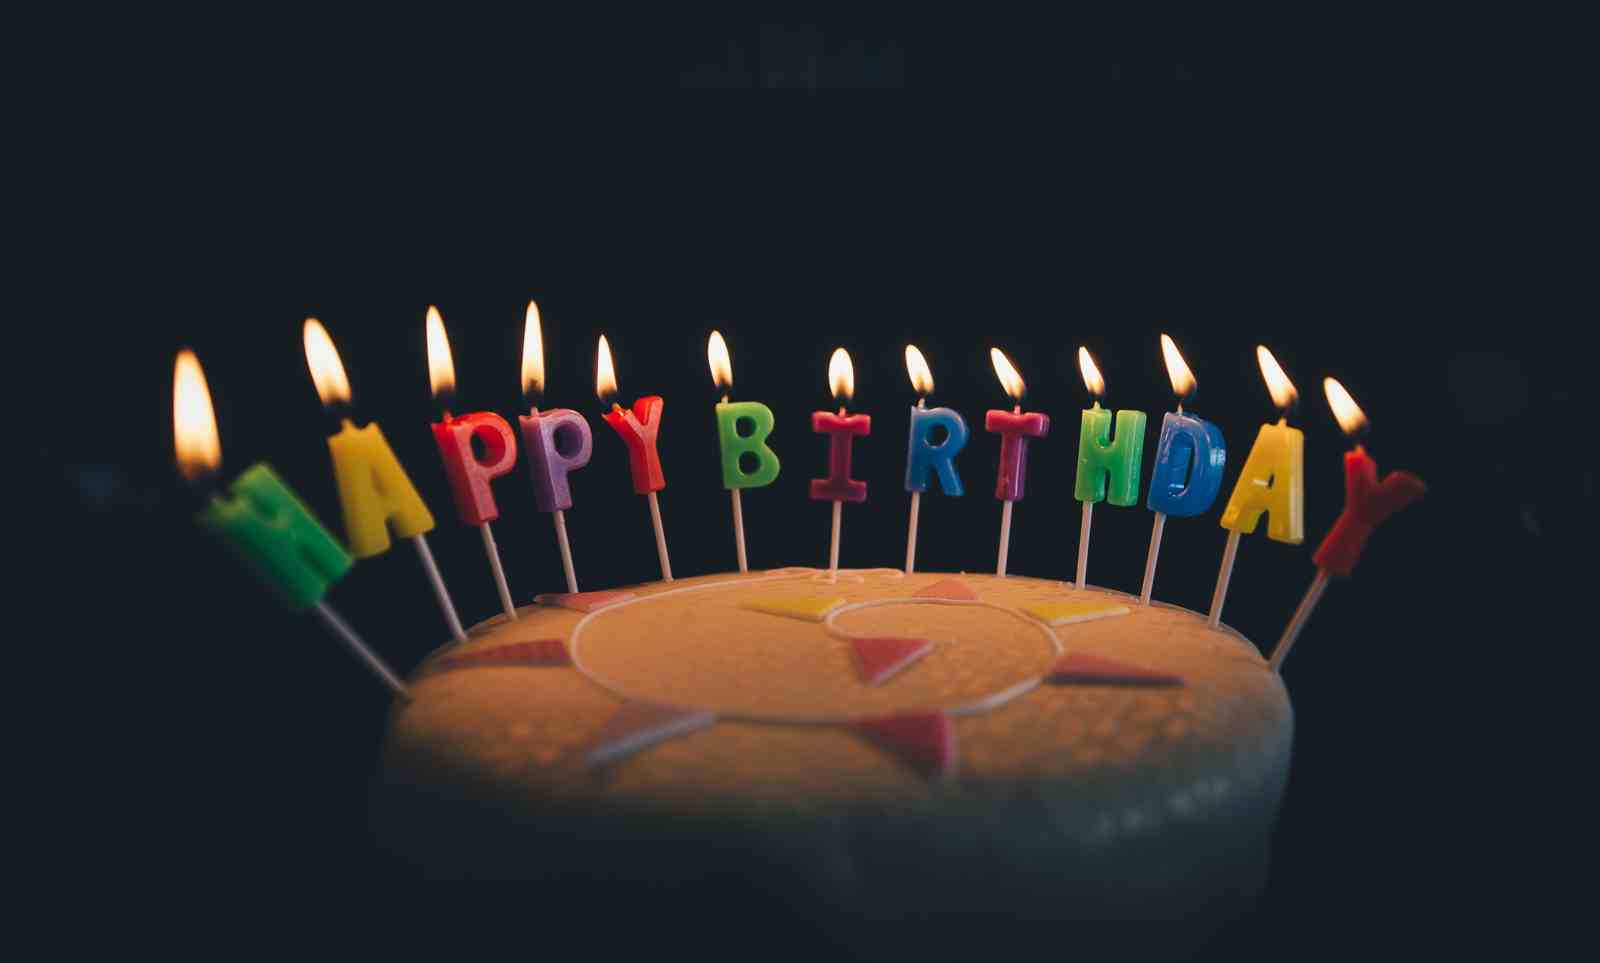 image from Happy Birthday: Citizen Labs